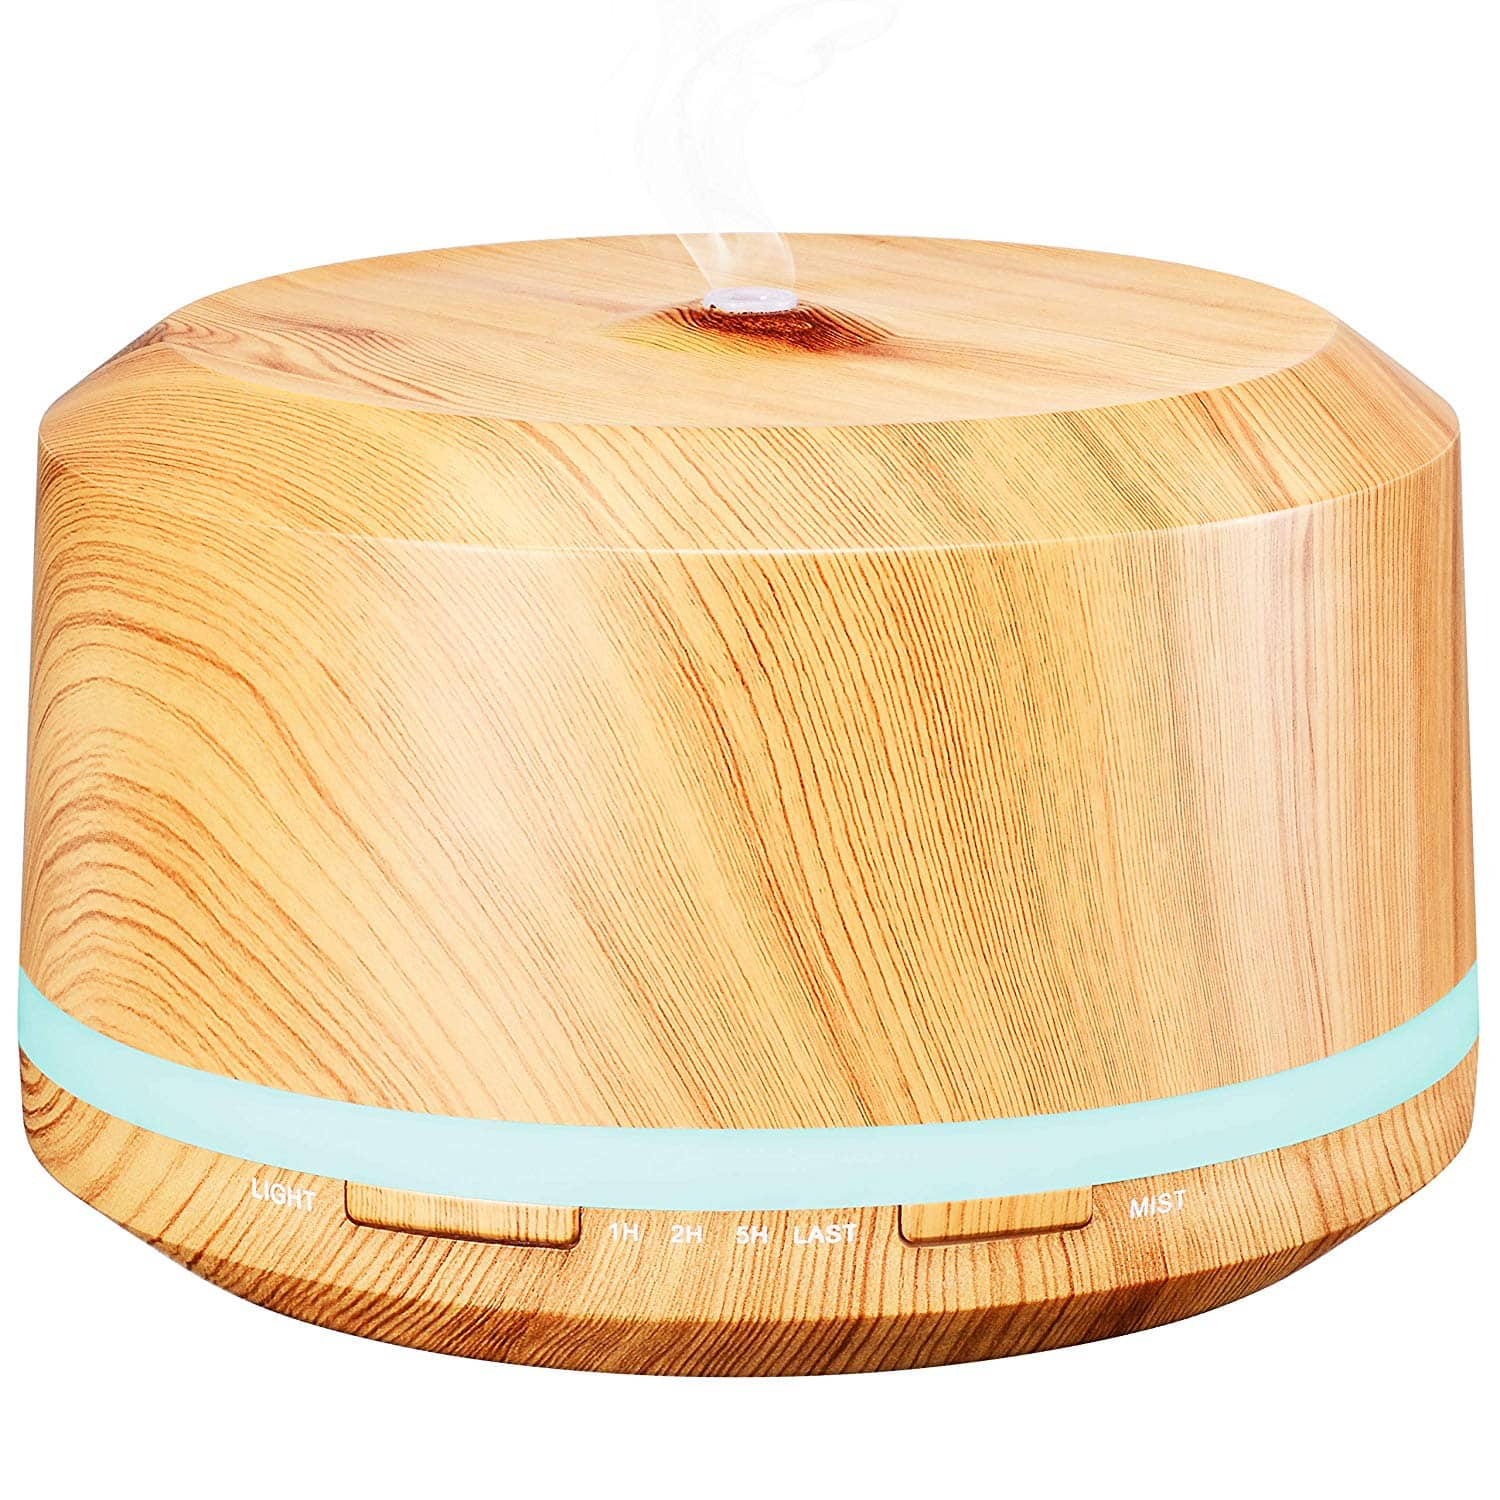 450ml Aromatherapy Essential Oil Diffuser Ultrasonic Cool Mist Diffusers with 8 Color Changing Light $13.79 @Amazon